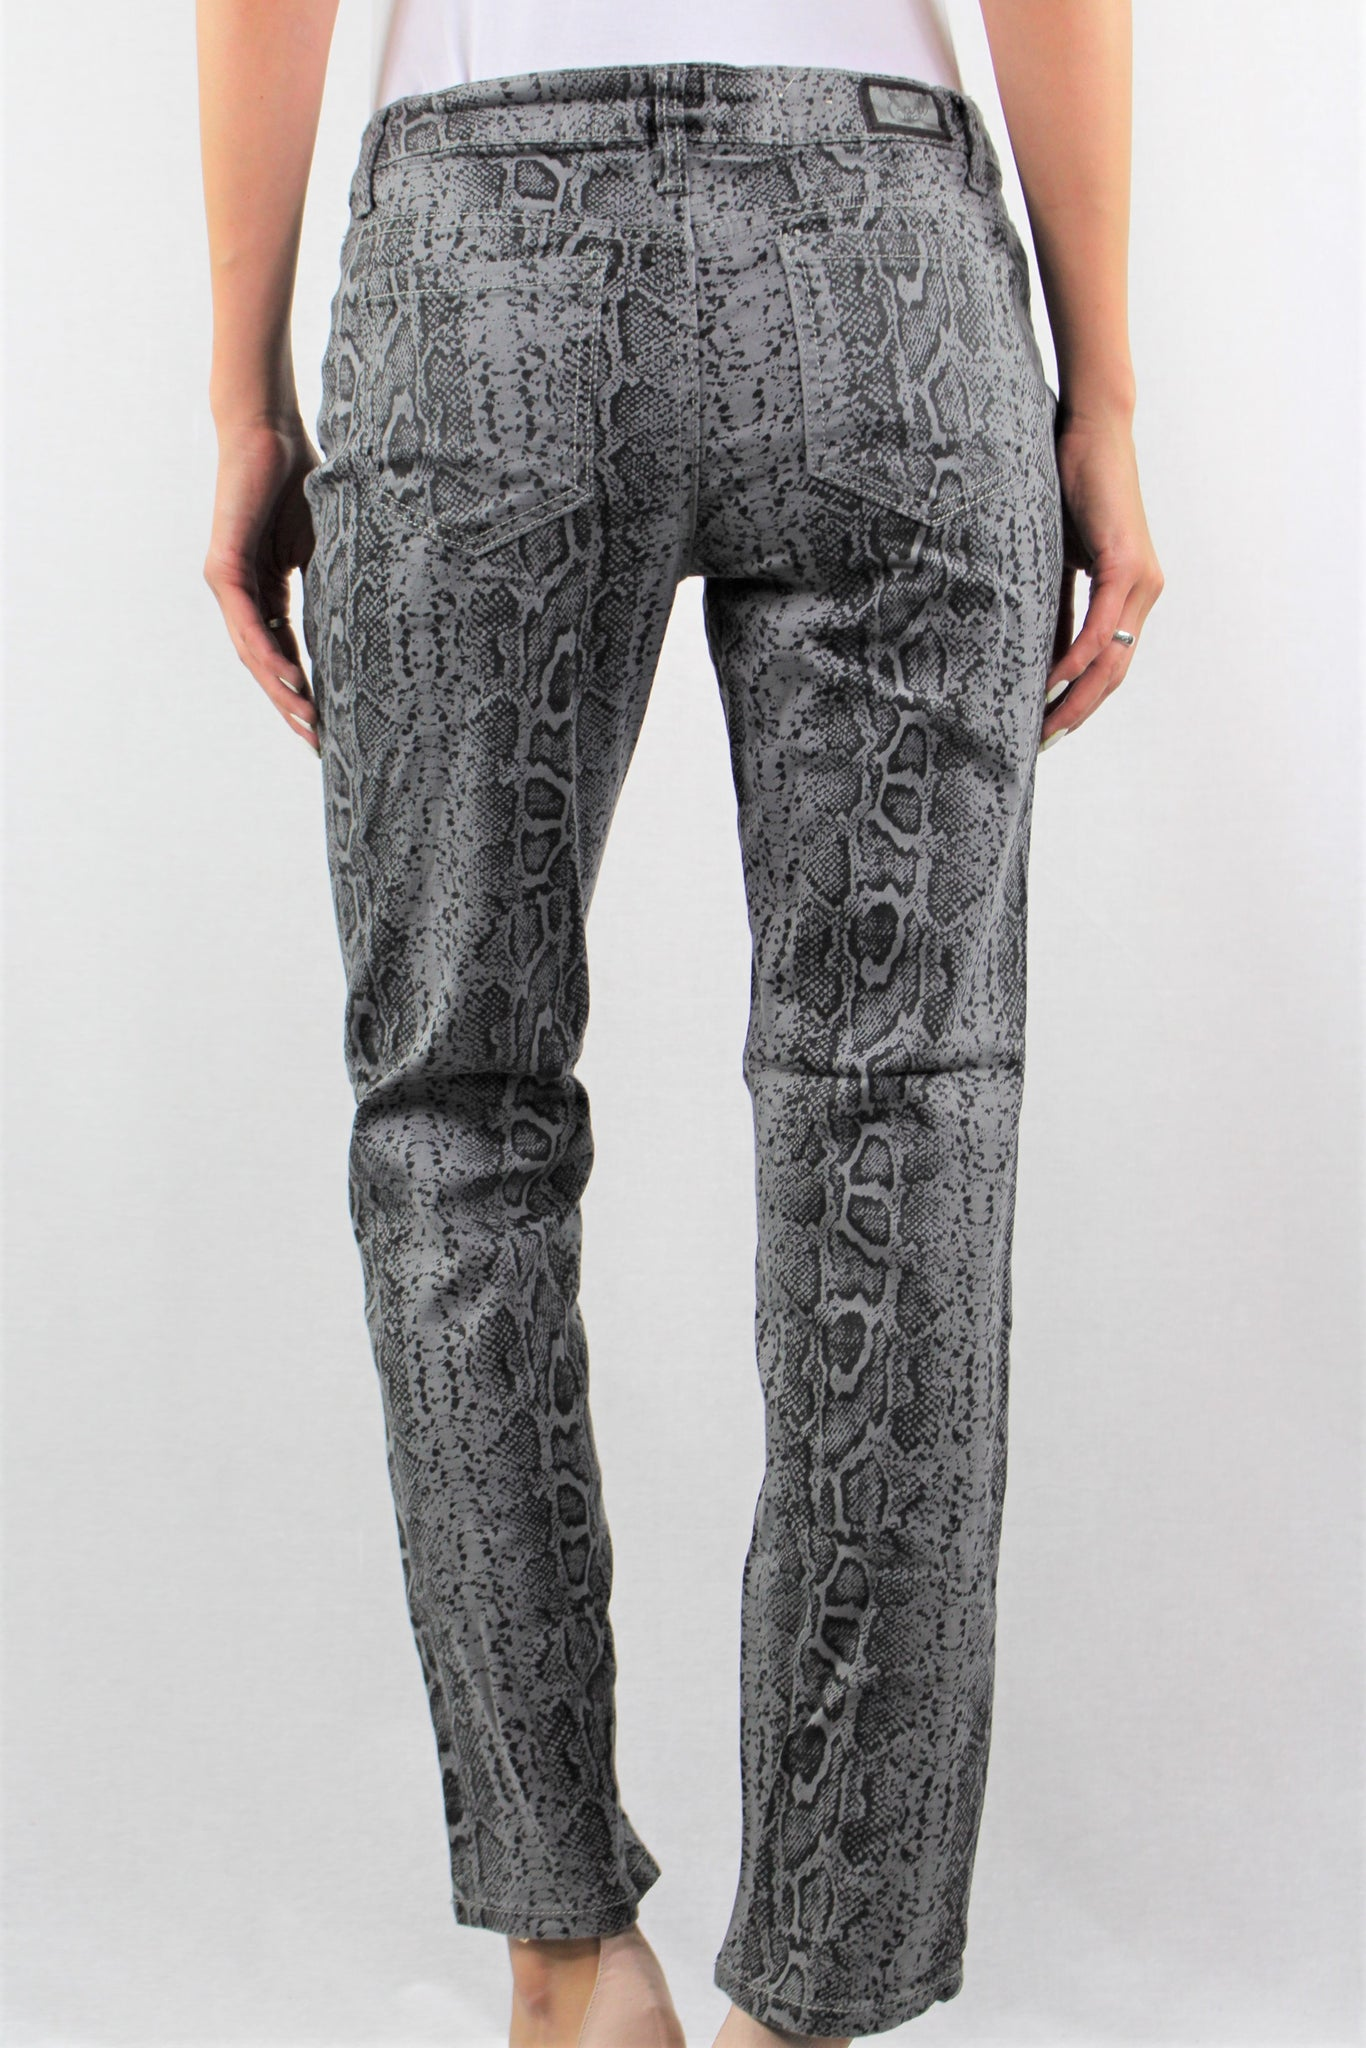 Snake Straight Cut Pants